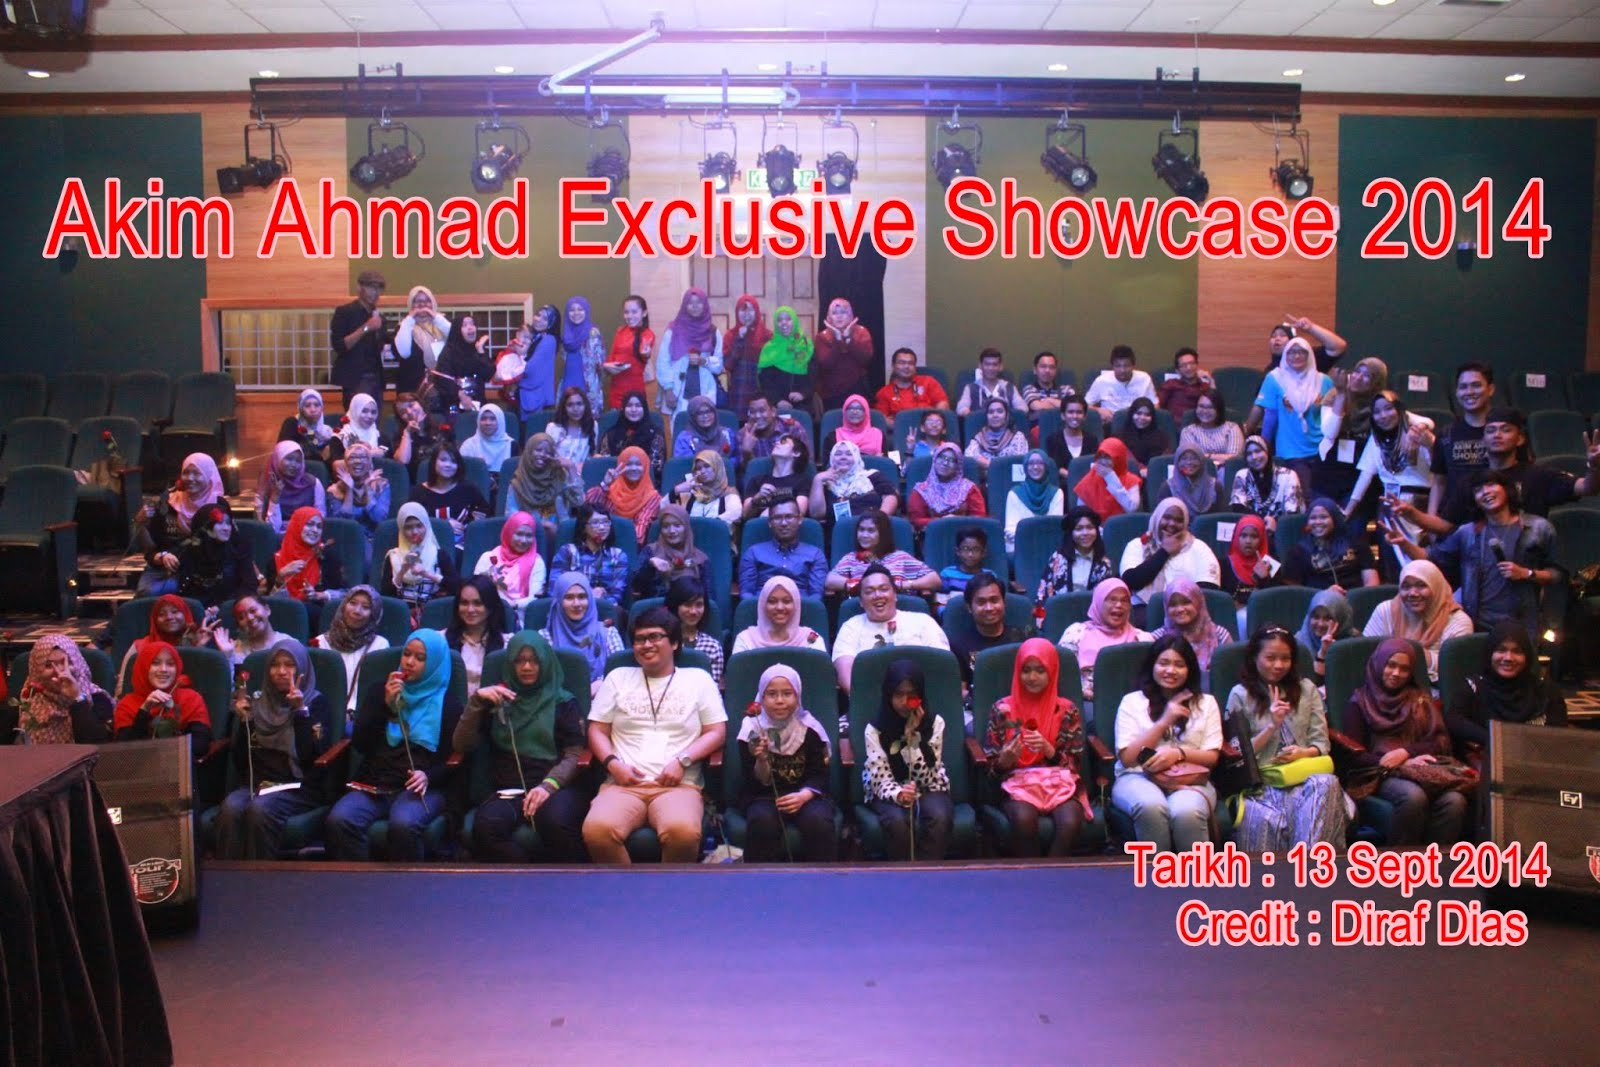 Akim Ahmad Exclusive Showcase 2014